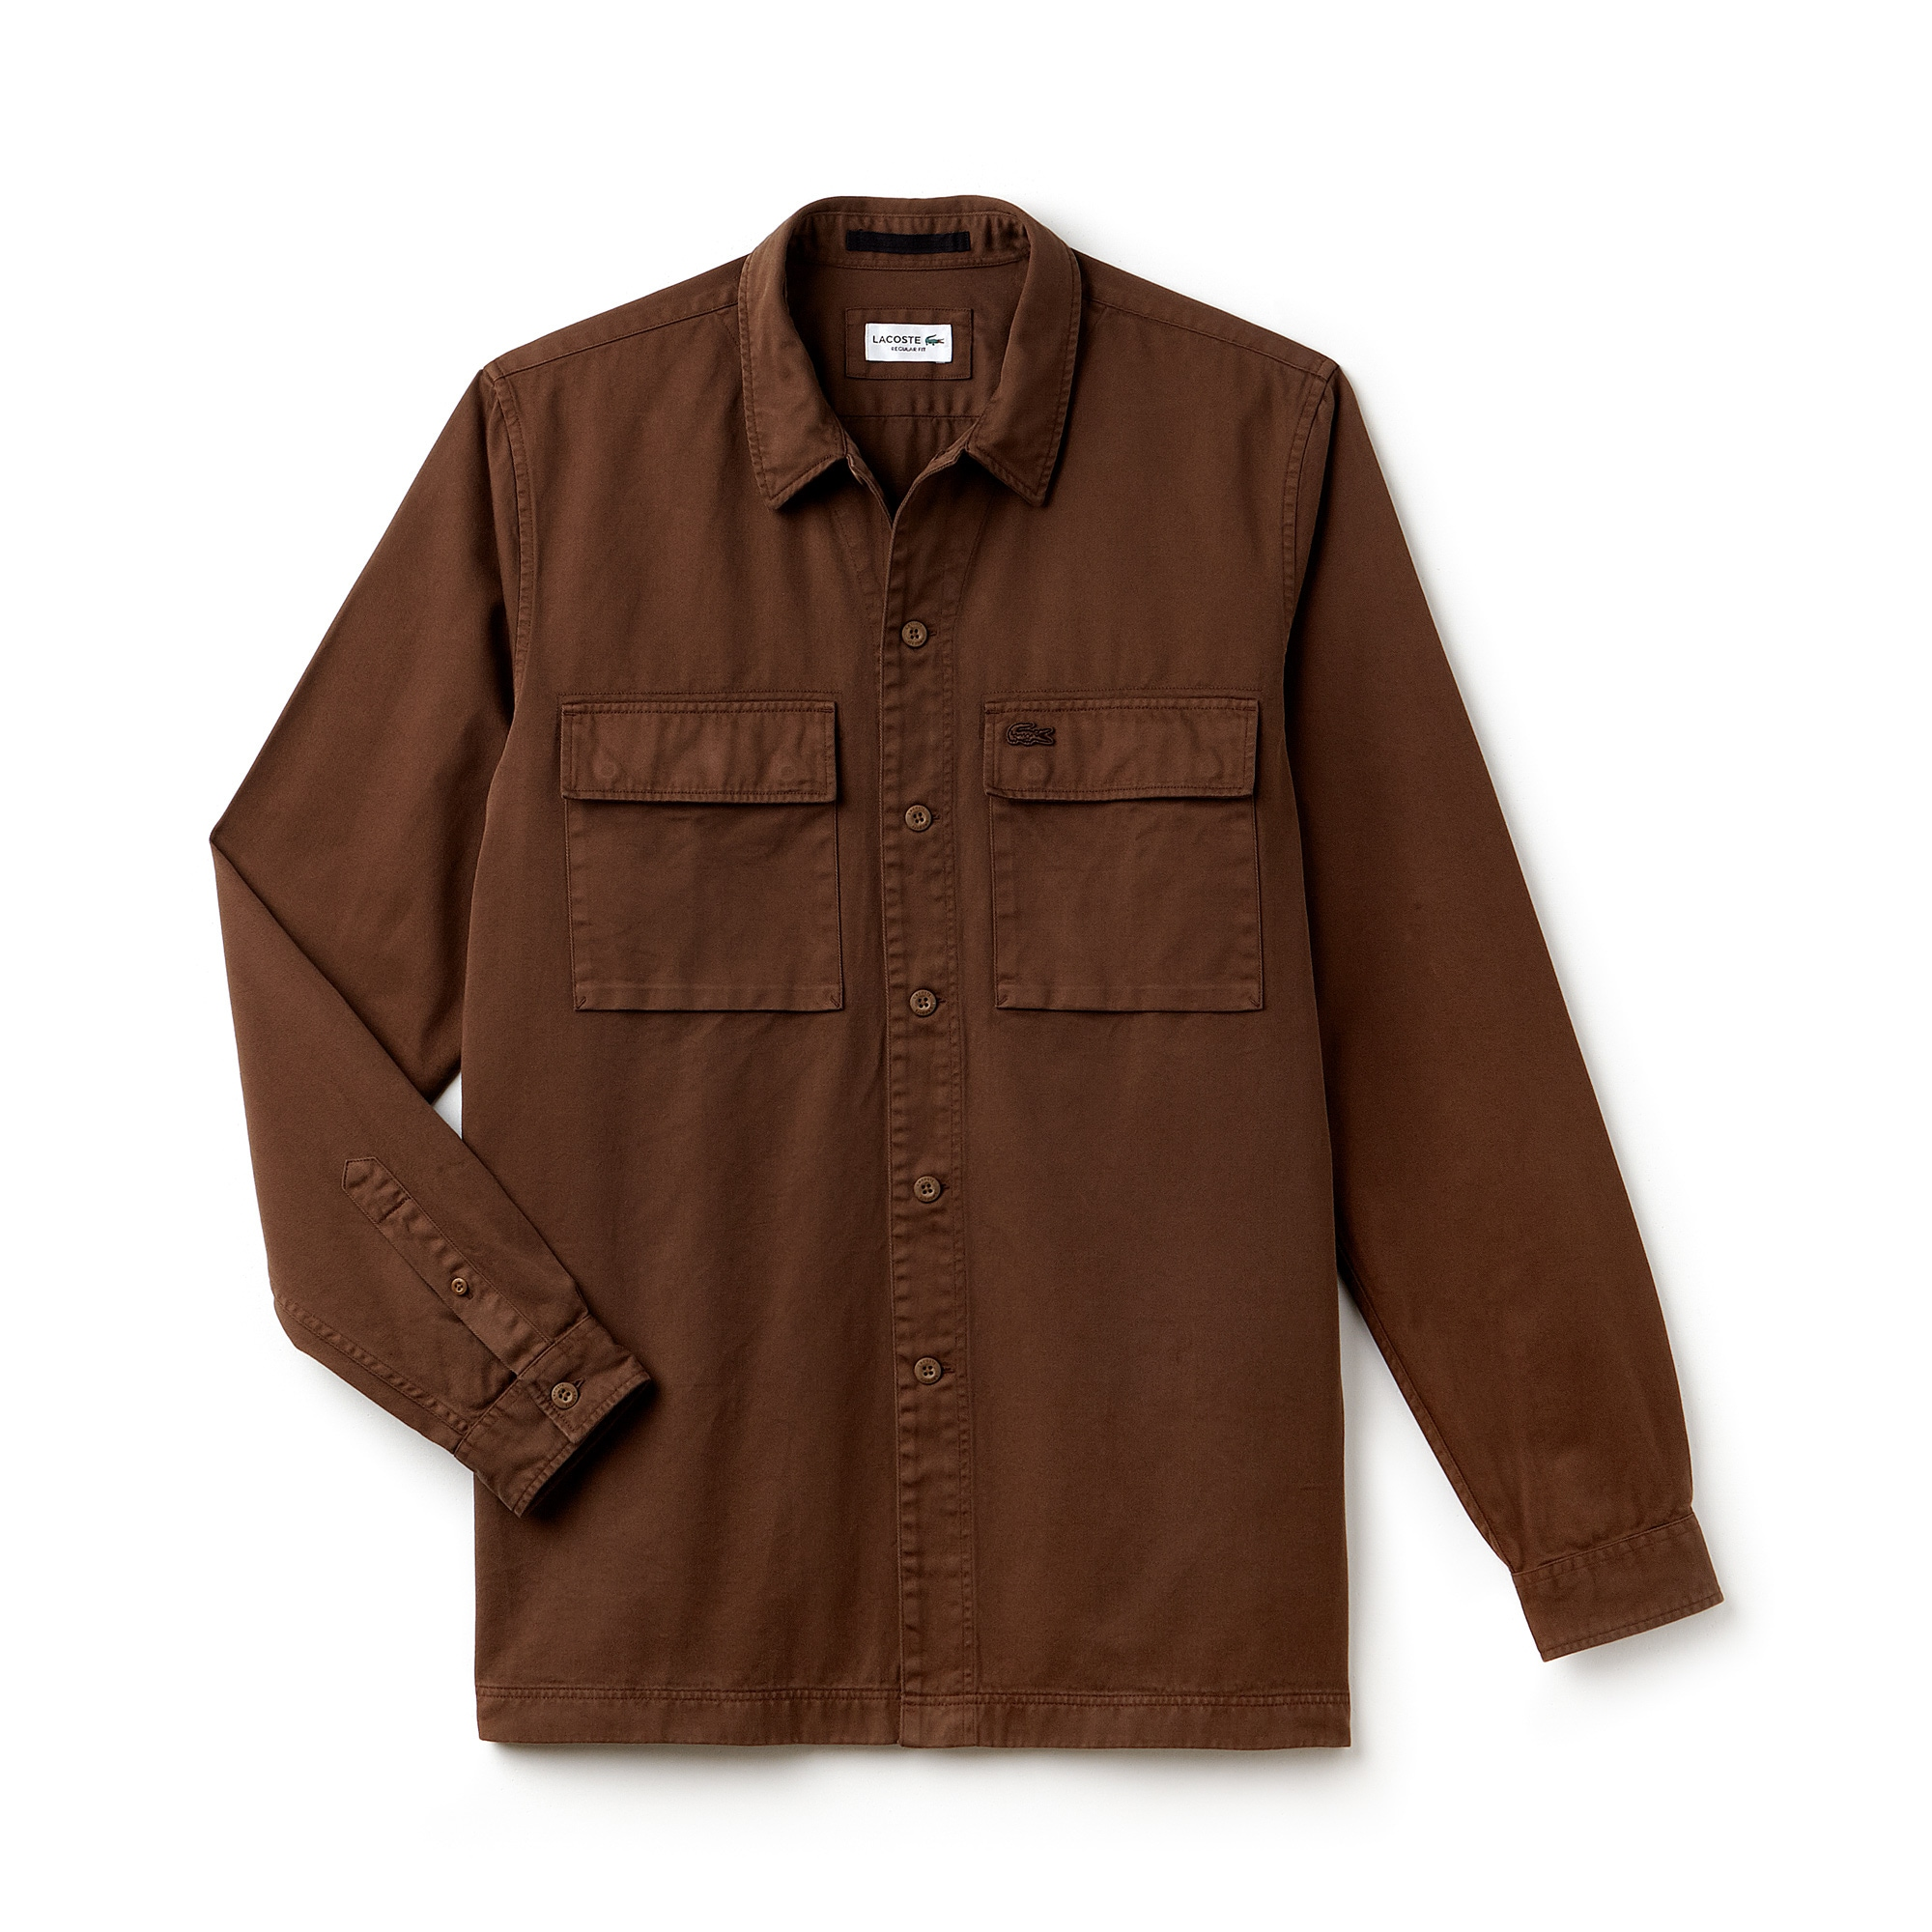 Men's Relaxed Fit Faded Effect Cotton Twill Shirt